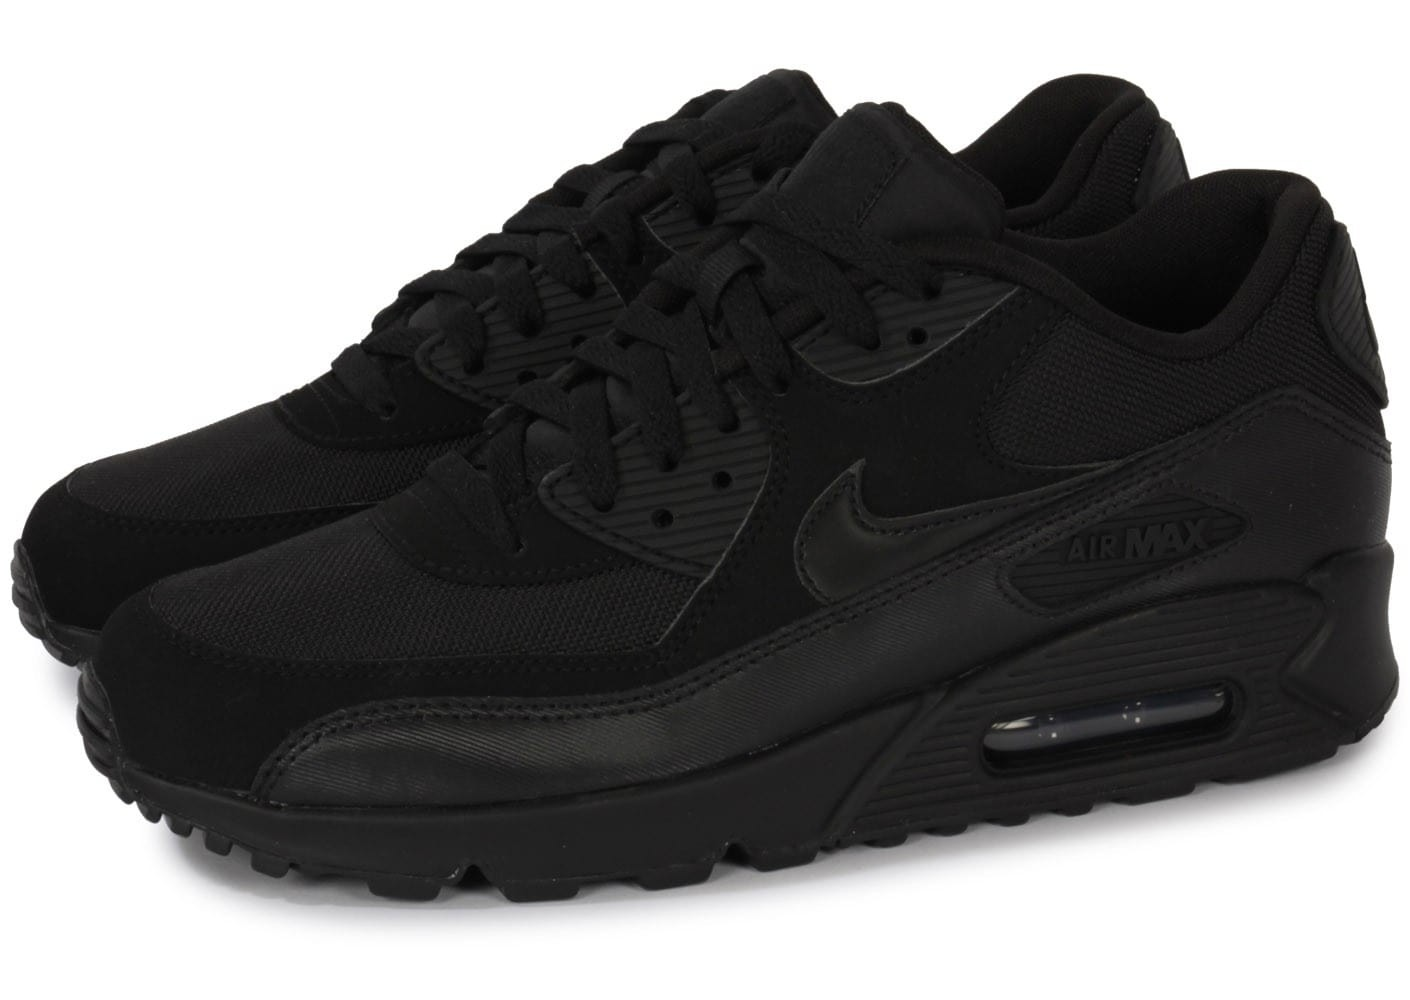 pre order superior quality great fit nike air max 90 homme noir et rouge